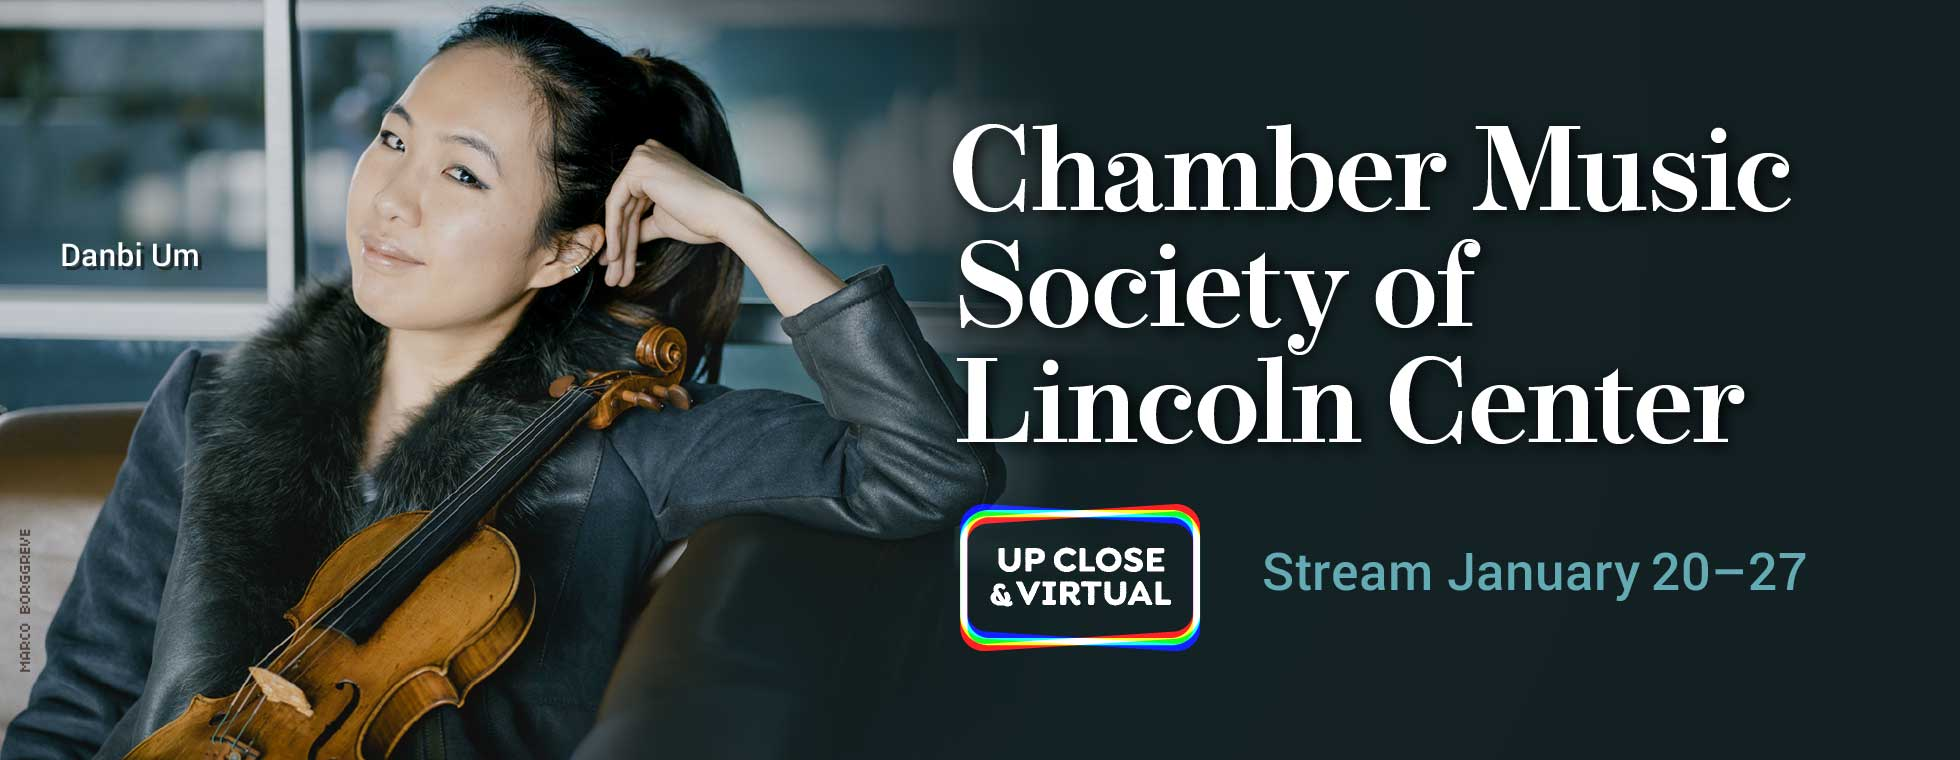 Chamber Music Society of Lincoln Center stream January 20–27, 2021